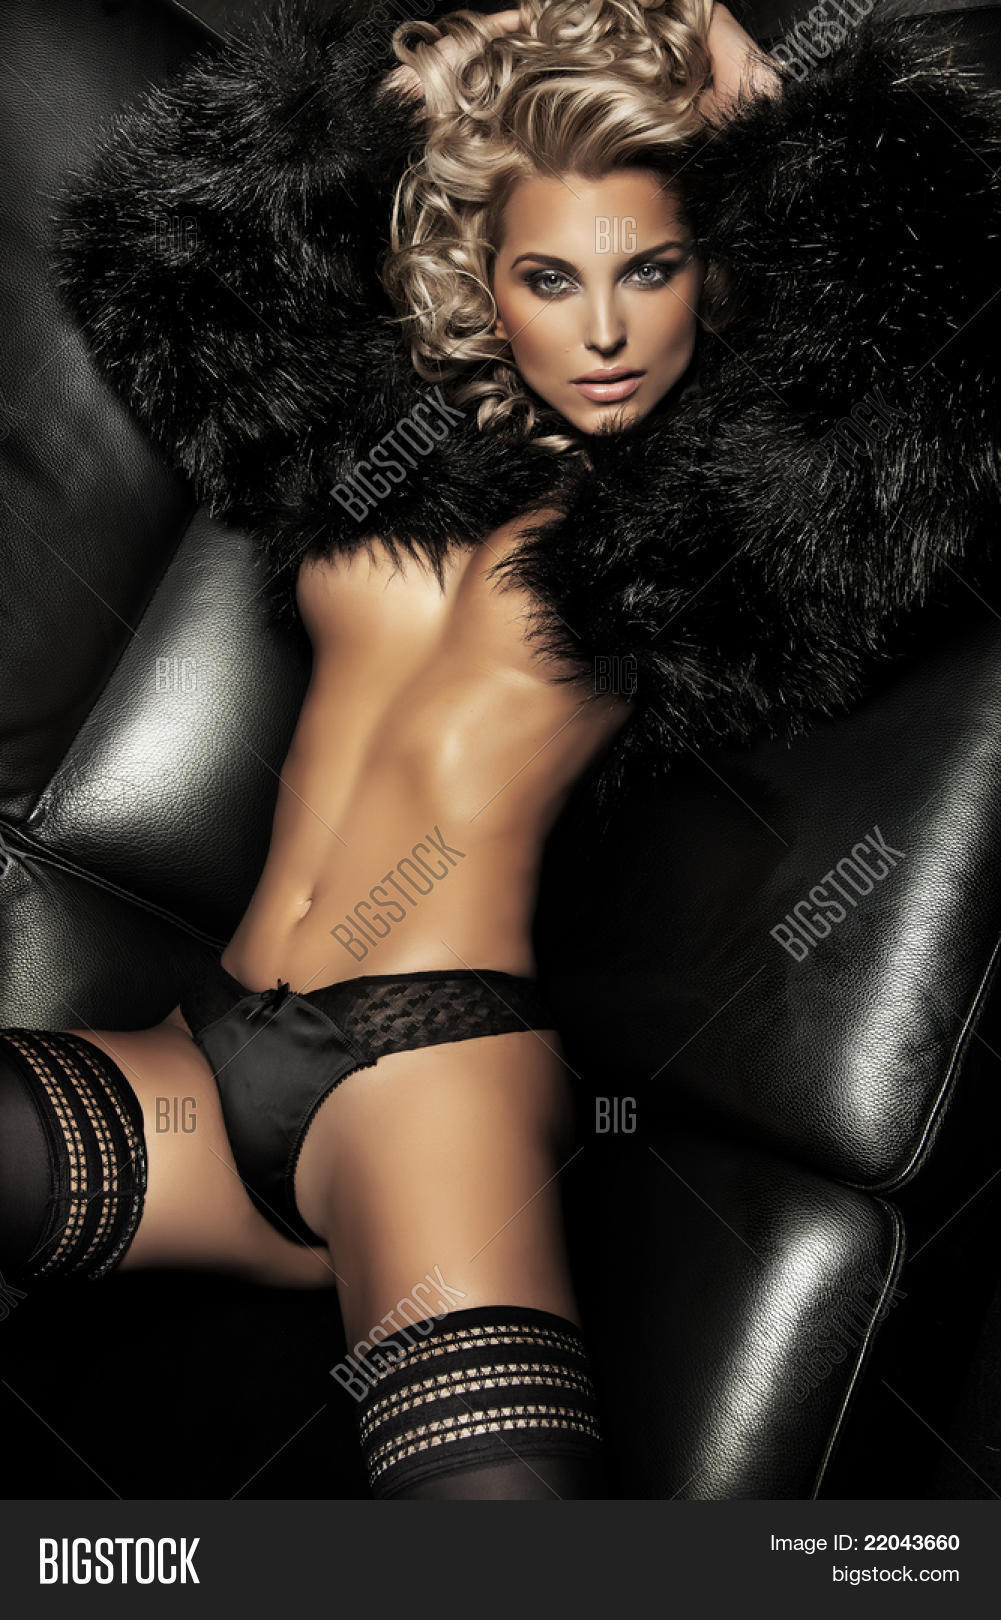 Sizzling Hot Free Download Fur Handy